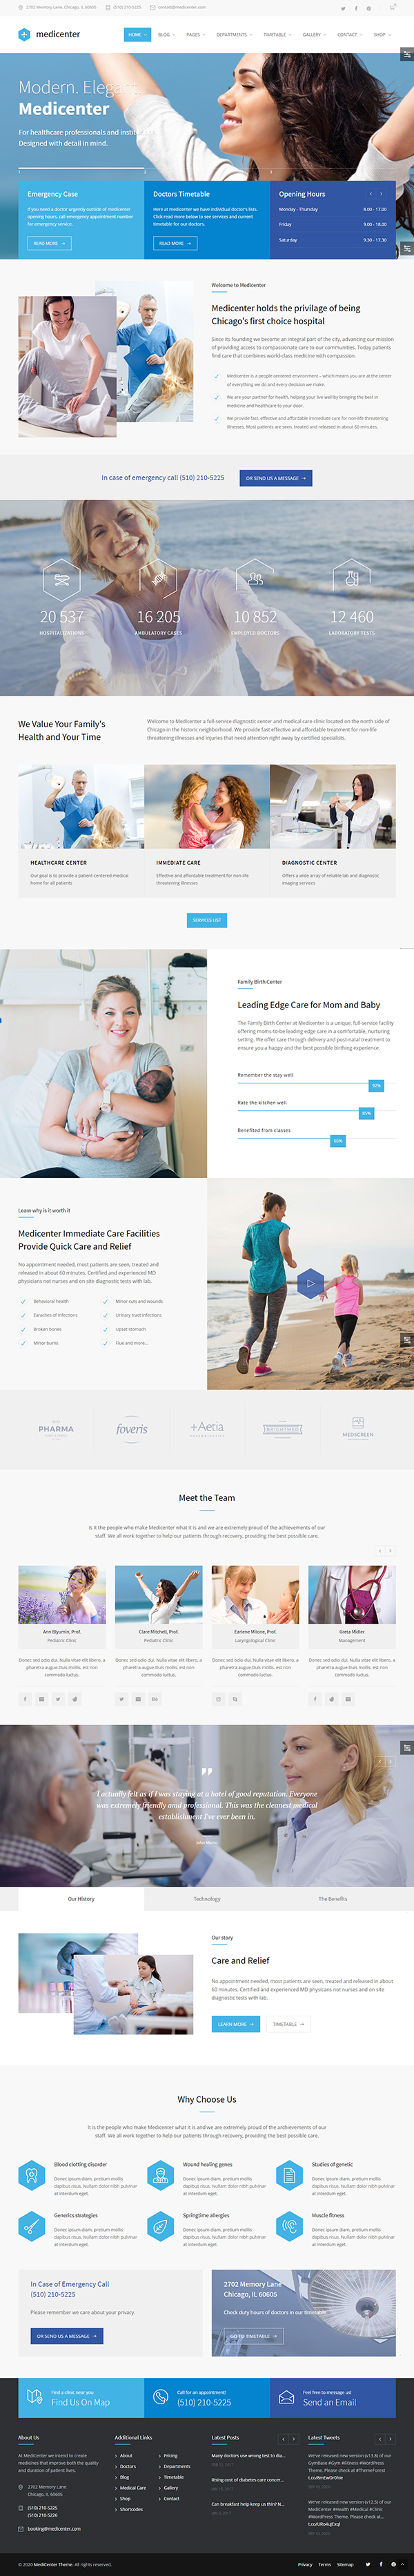 MediCenter - Health Medical Clinic WordPress Theme